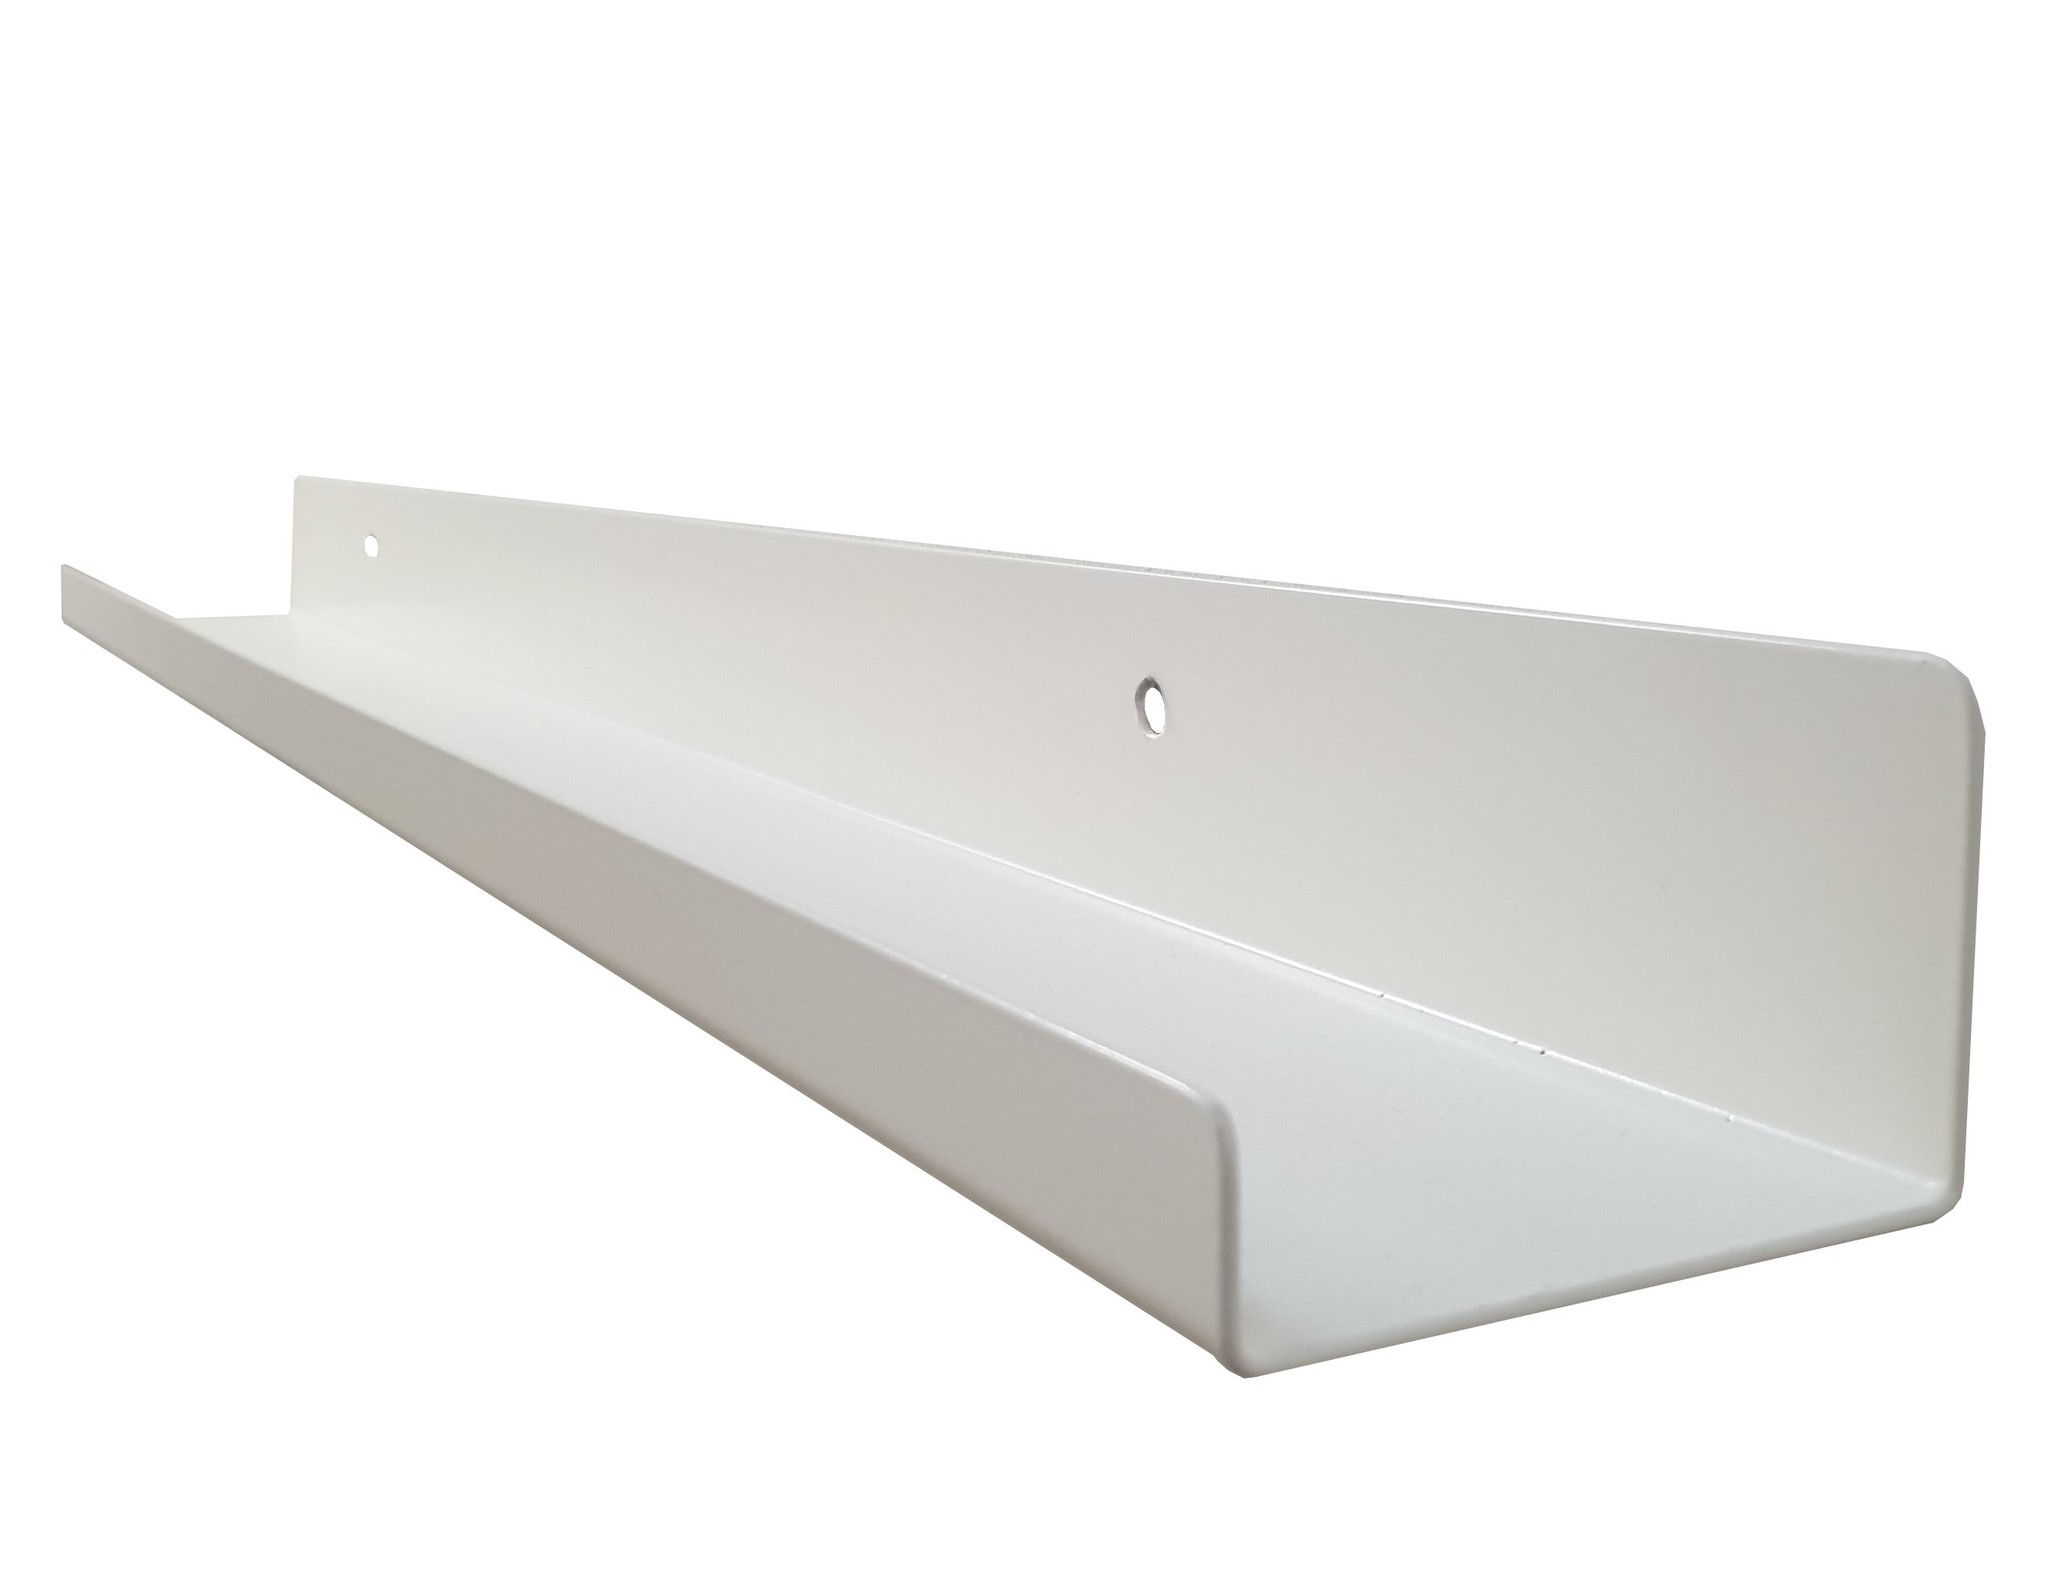 Stoer Metaal iron wall shelf, white, various sizes